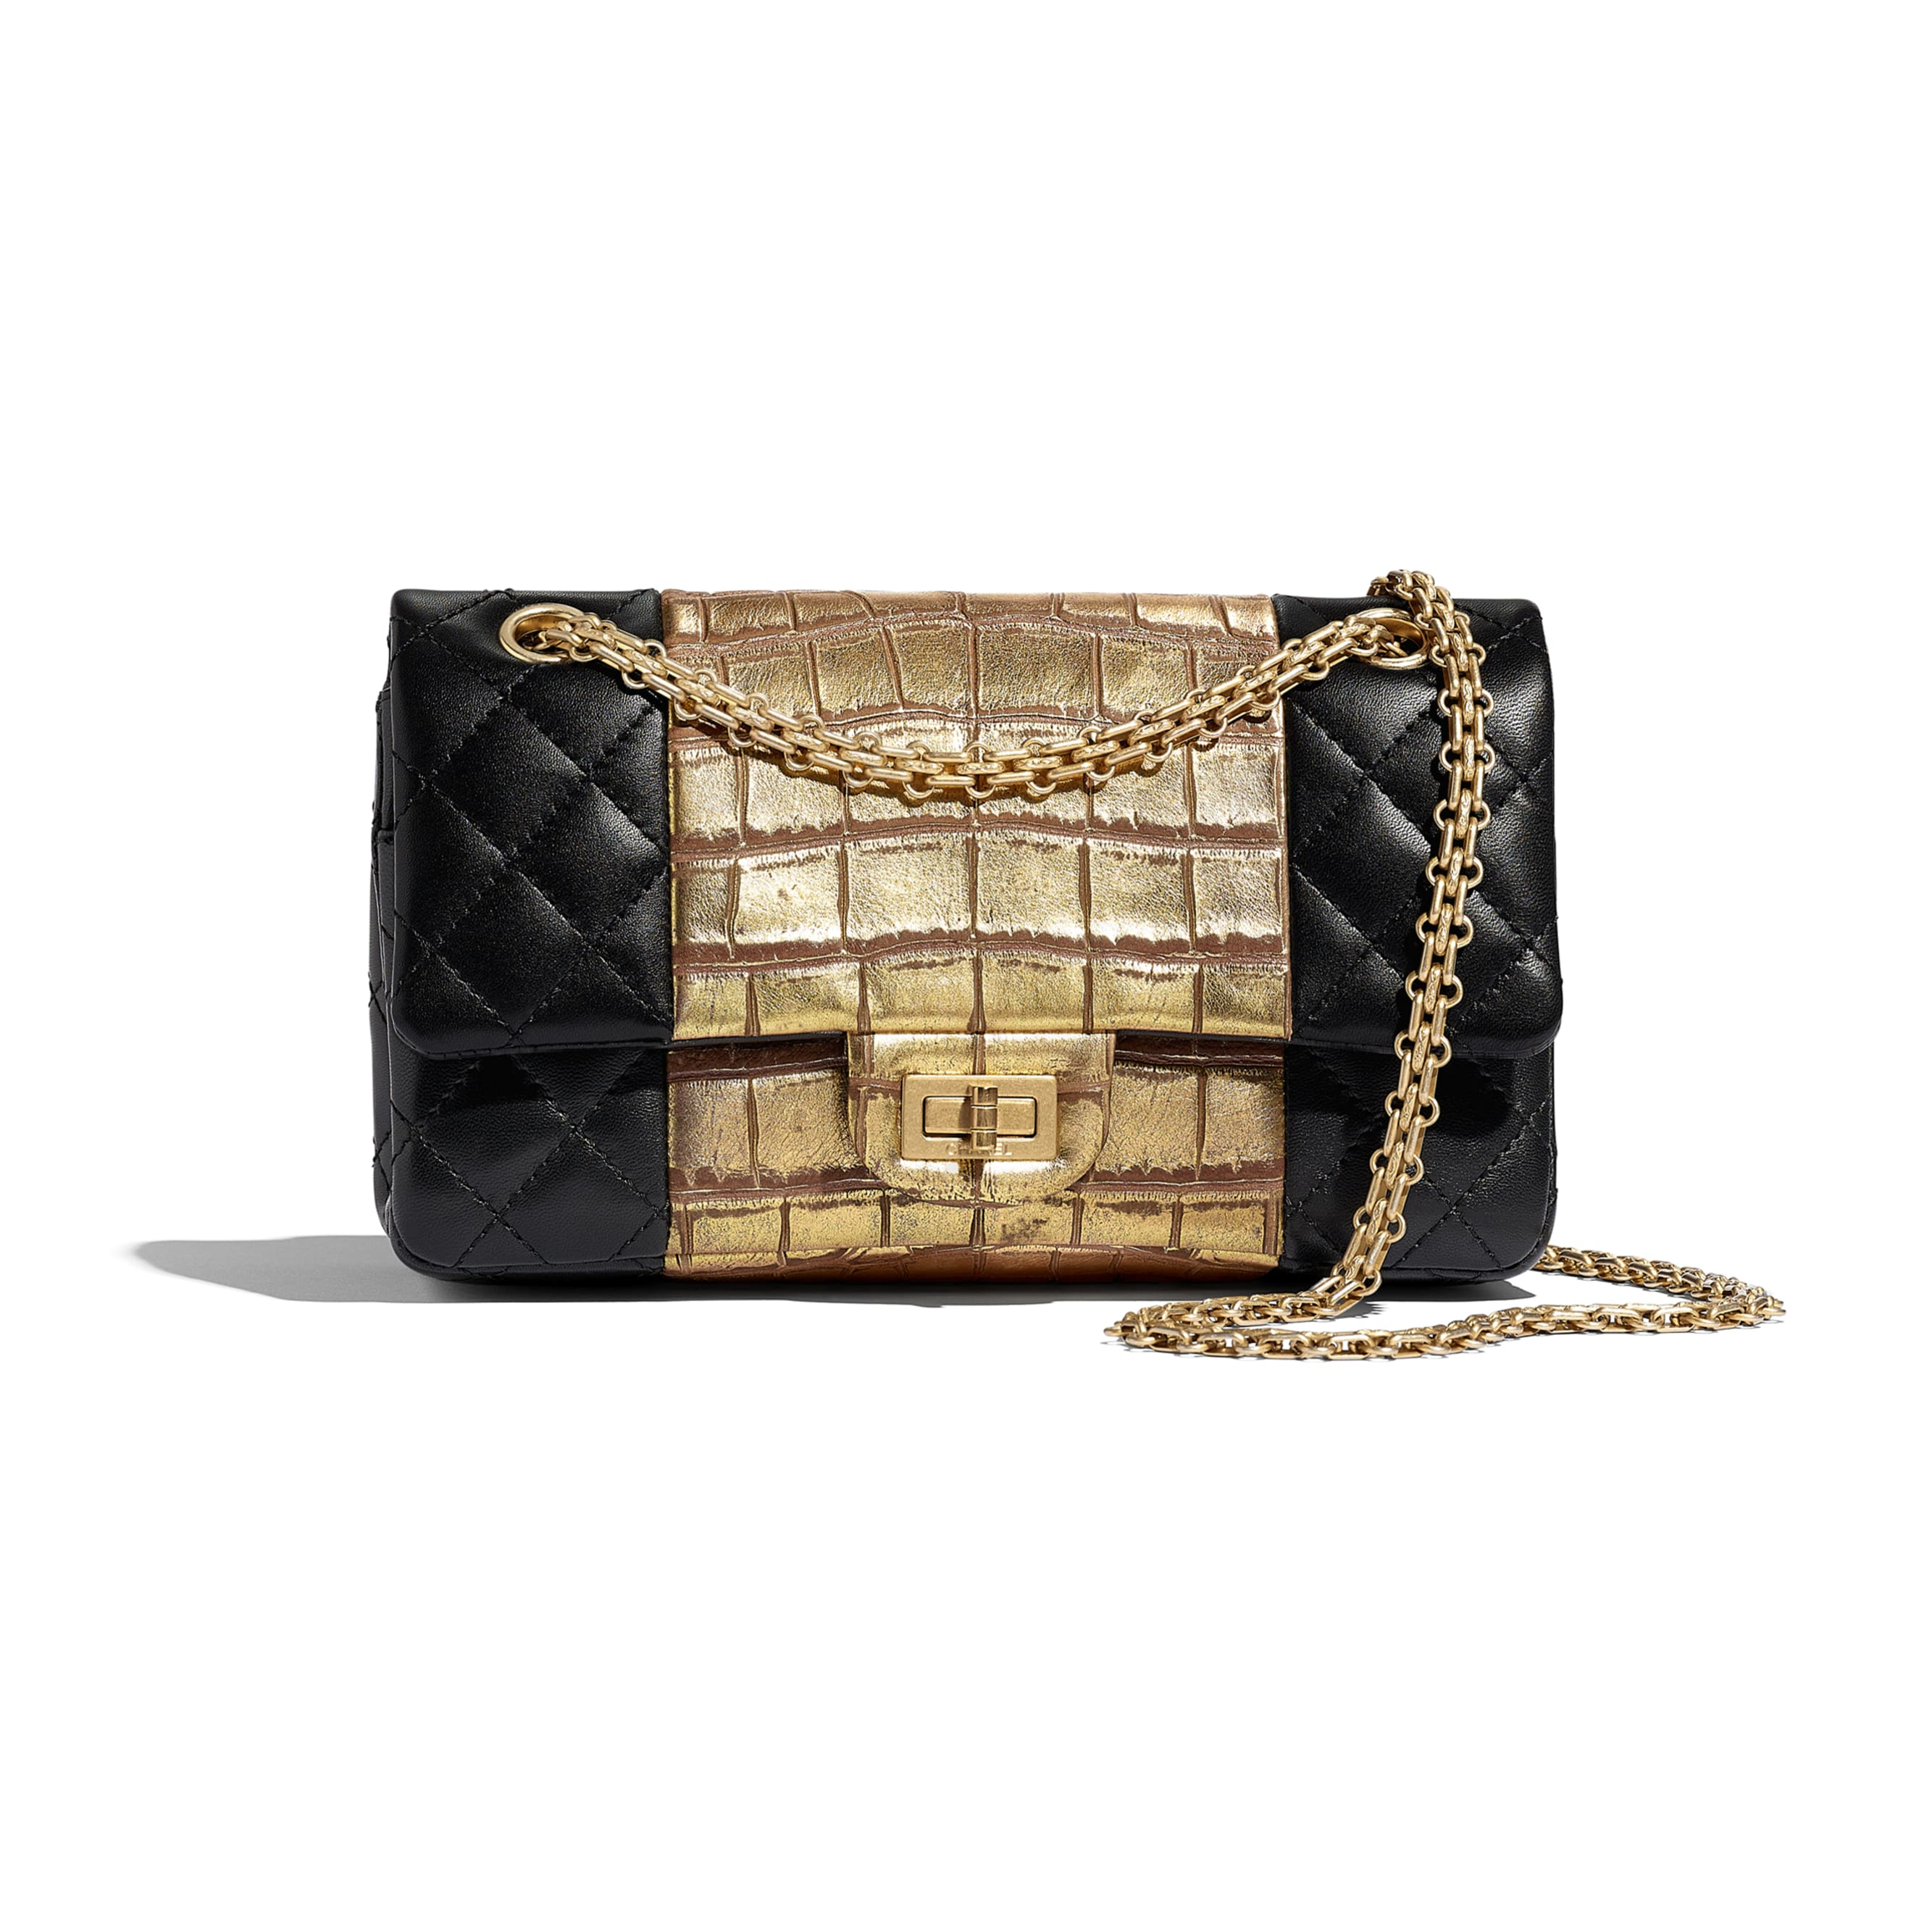 2.55 Handbag - Black & Gold - Lambskin, Crocodile Embossed Calfskin & Gold-Tone Metal - Default view - see standard sized version